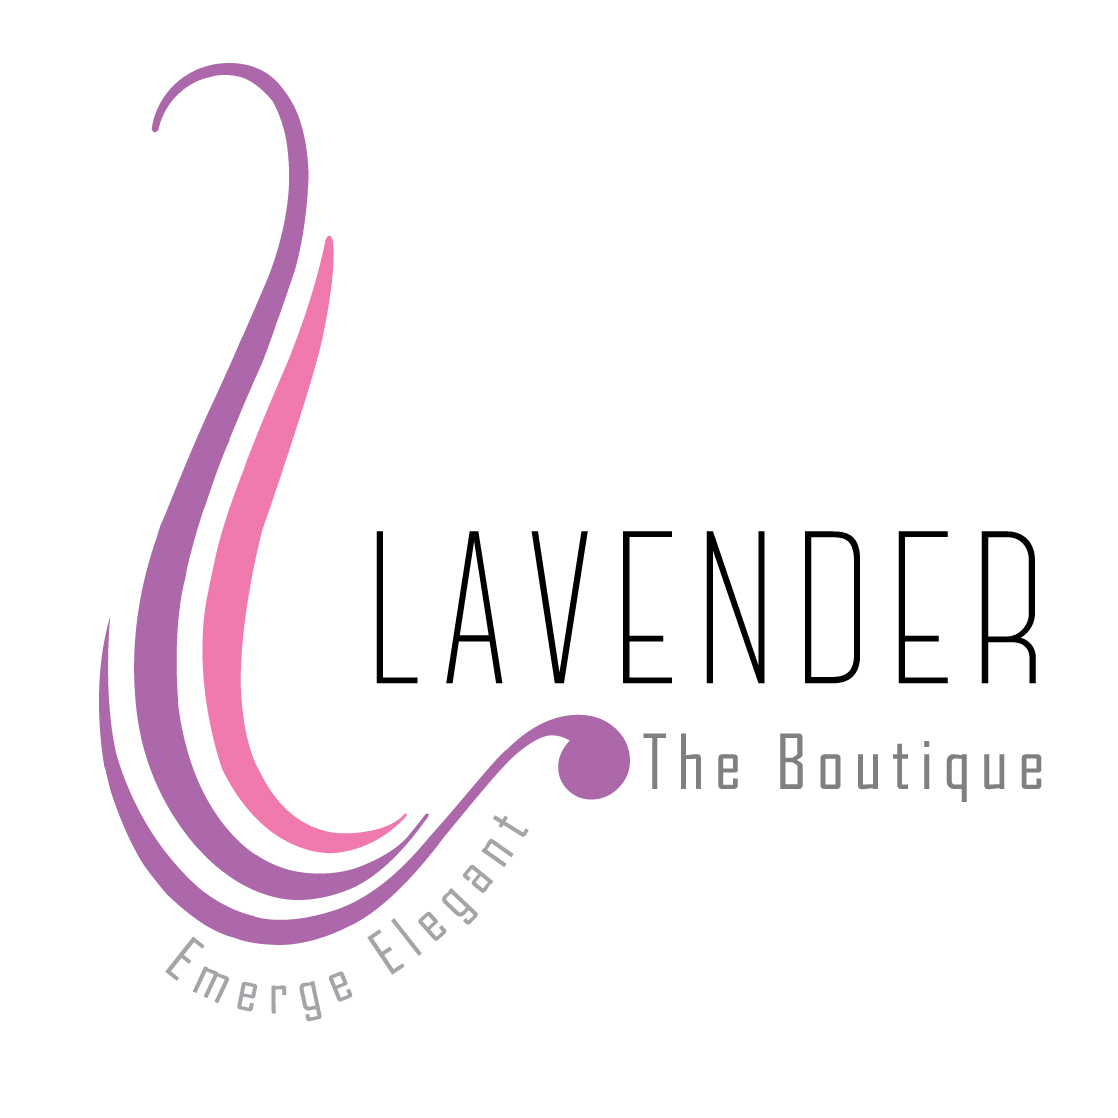 Lavender, The Boutique  - logo